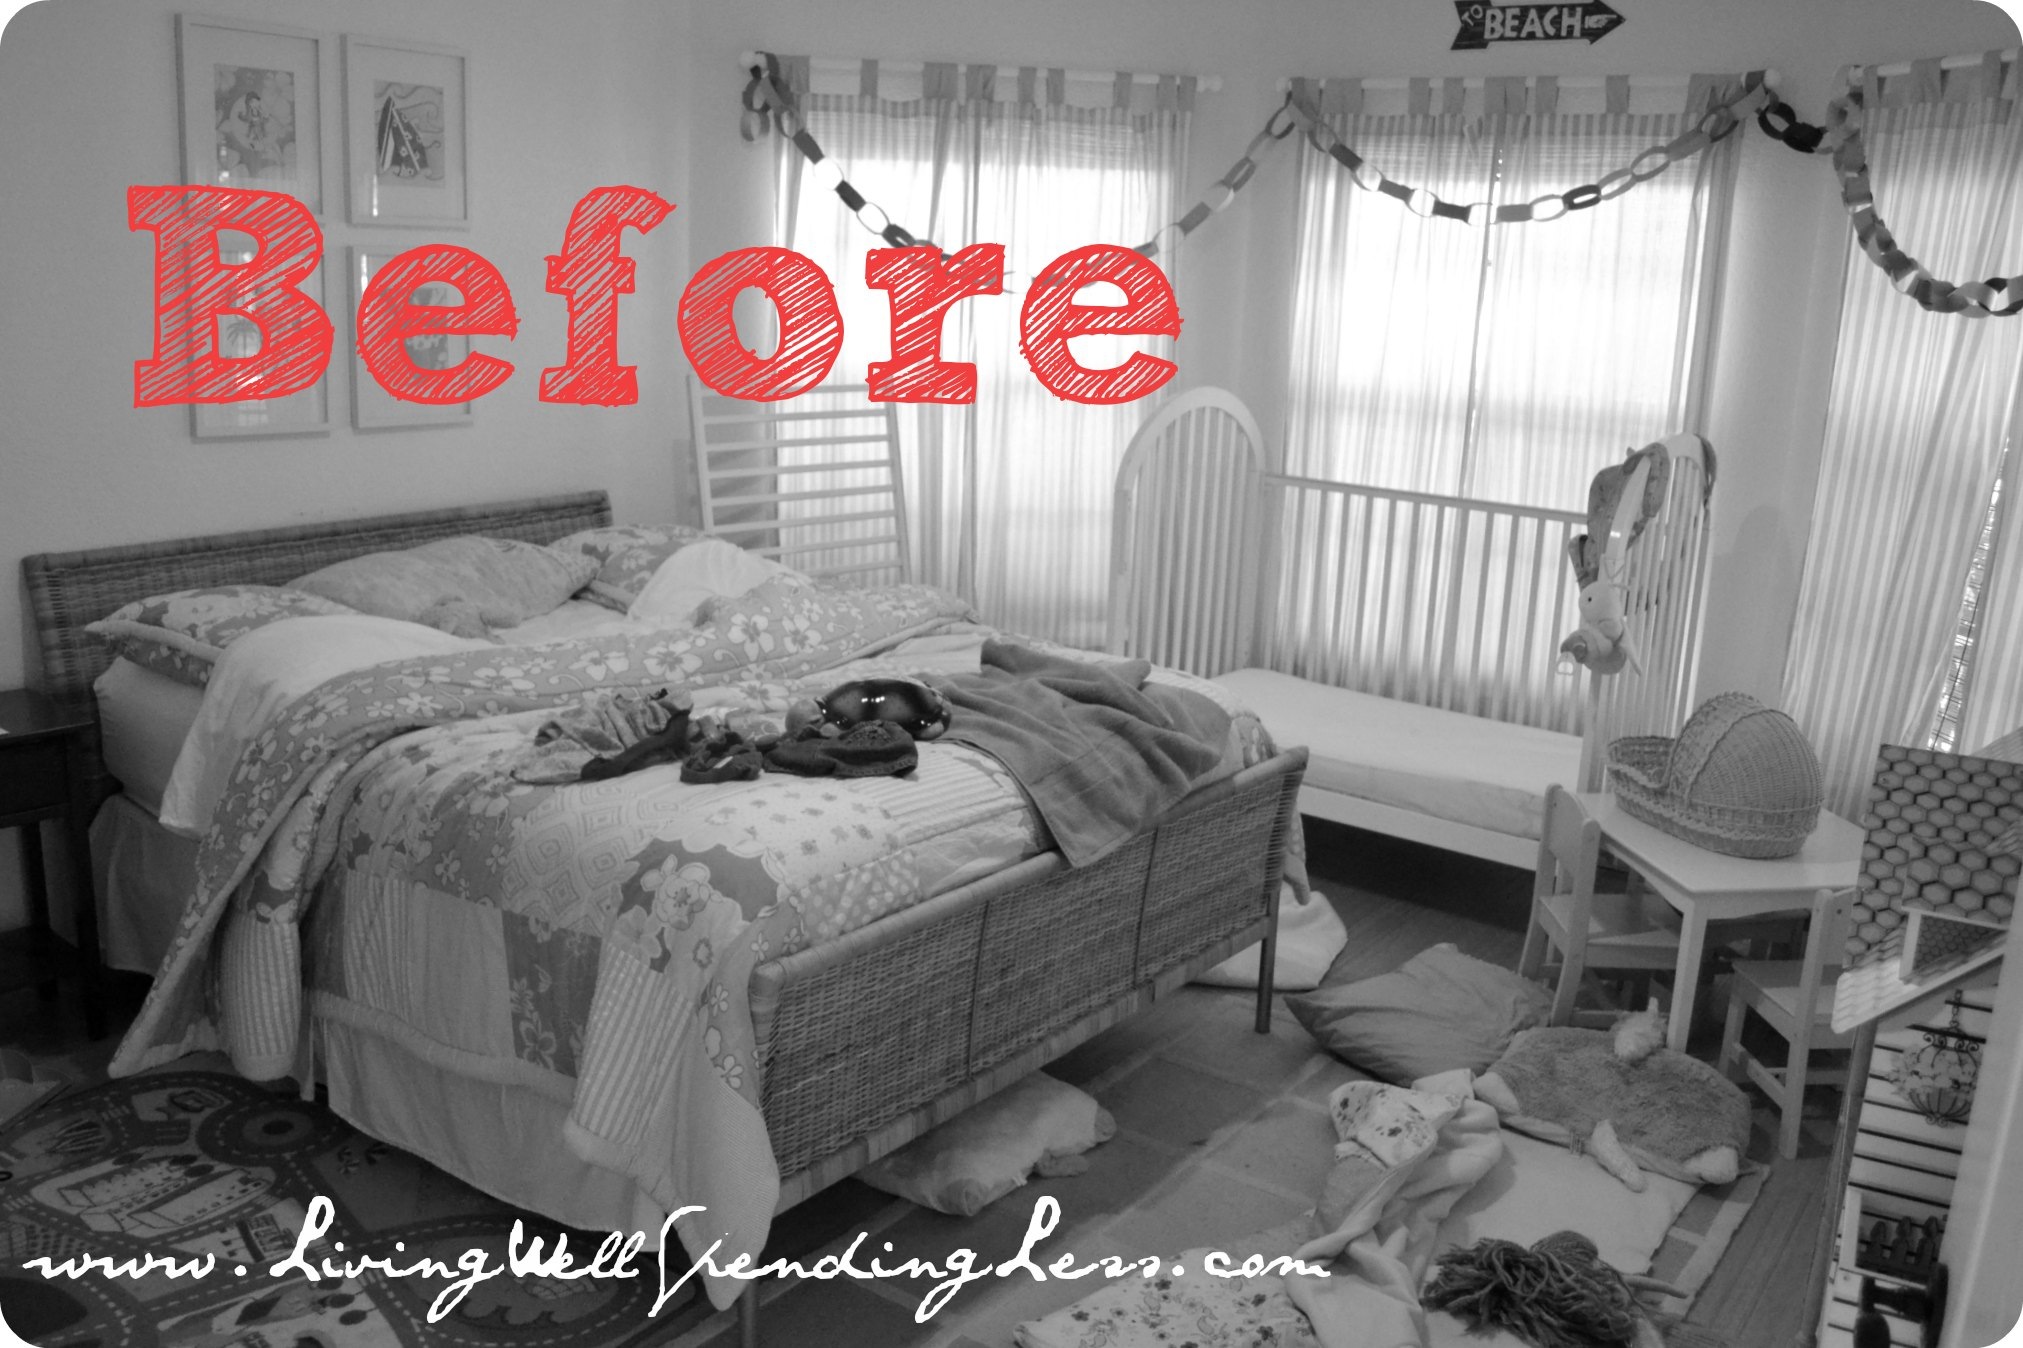 Clean Your Kids 39 Room Day 10 Living Well Spending Less